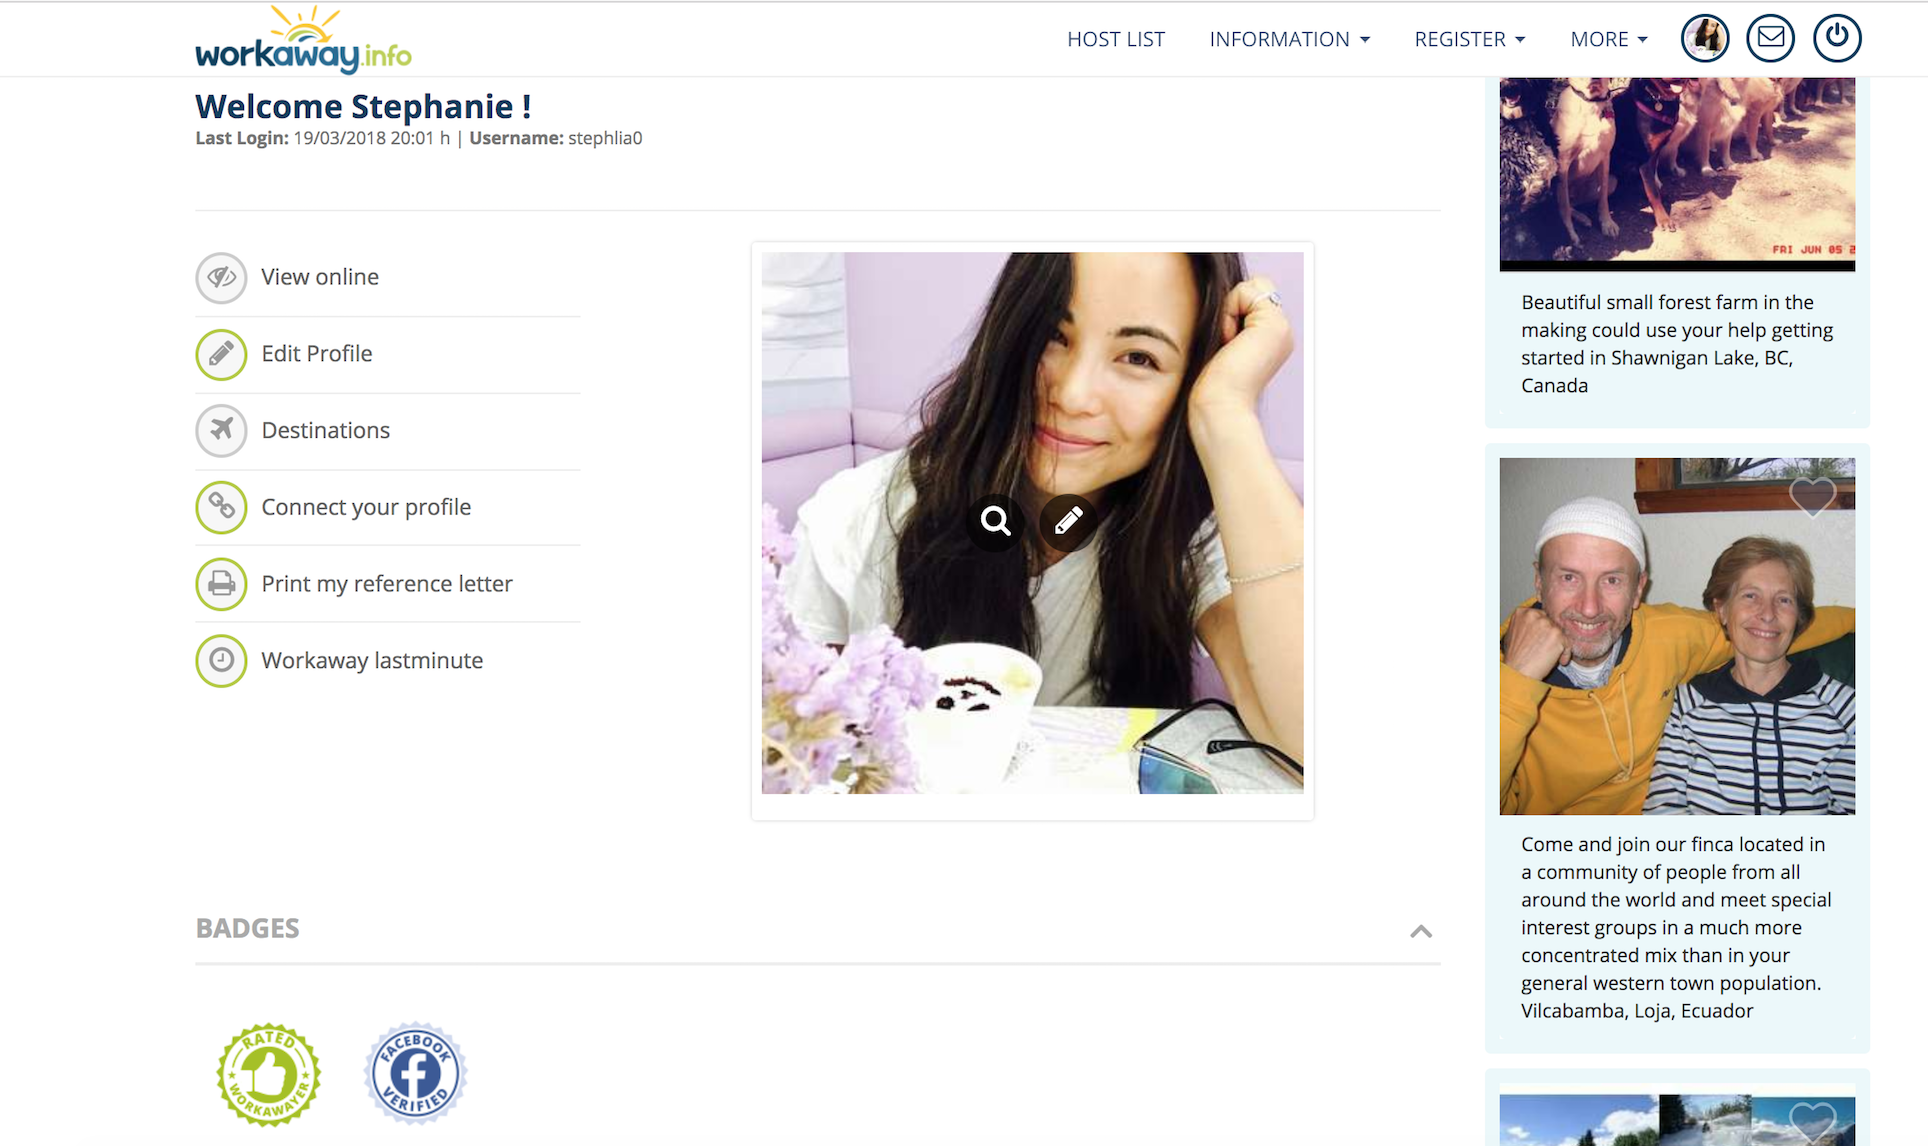 Here's what my profile page looks like on Workaway.info